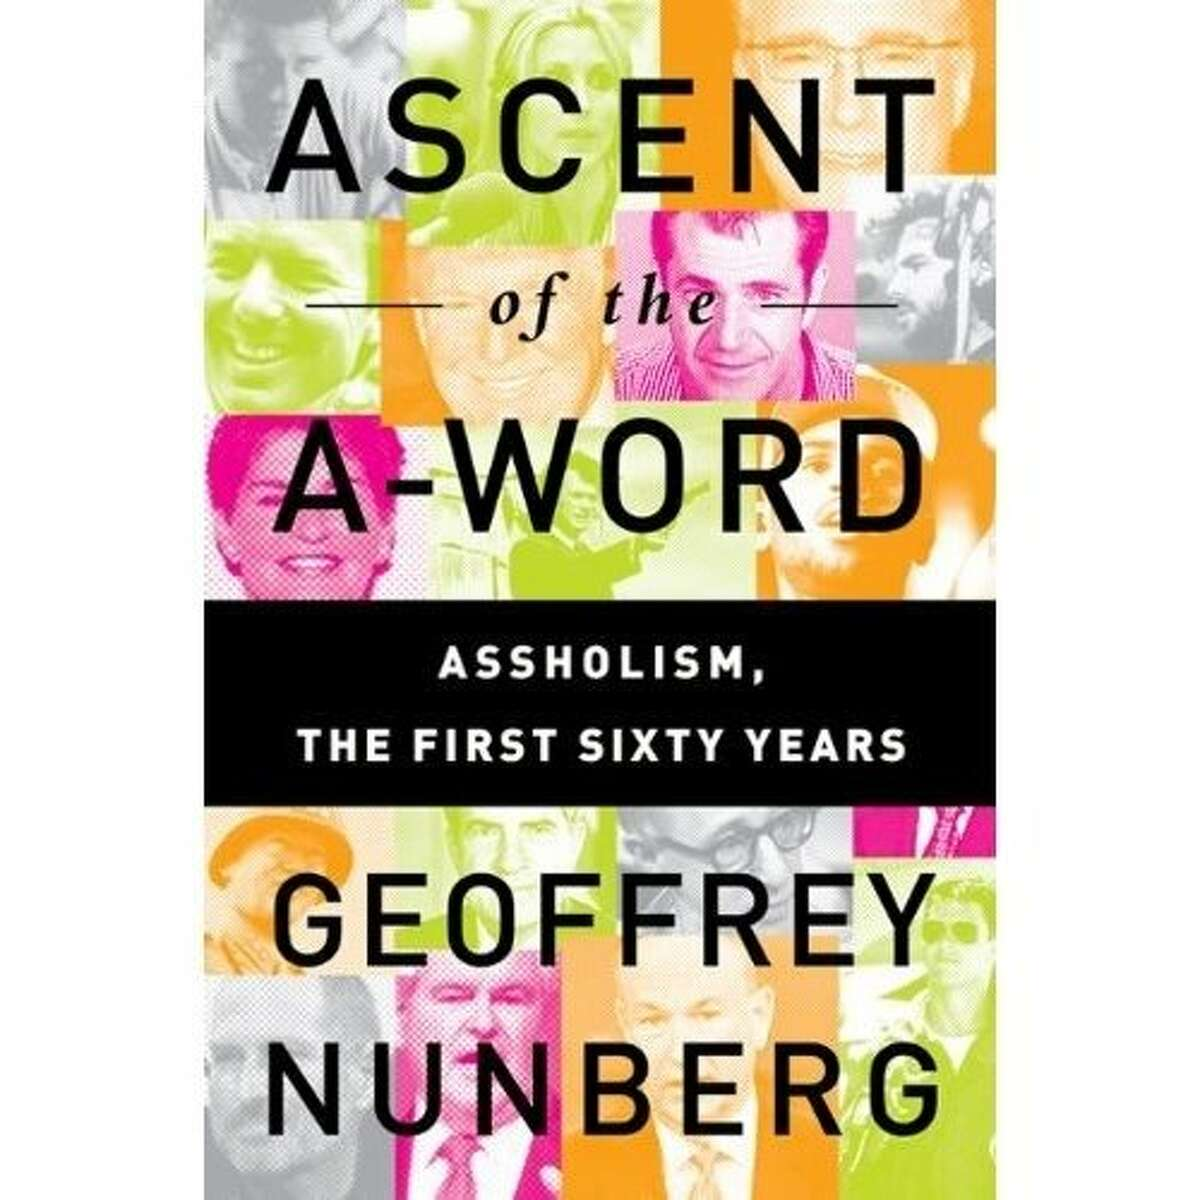 Ascent of the A-Word, by Geoffrey Nunberg